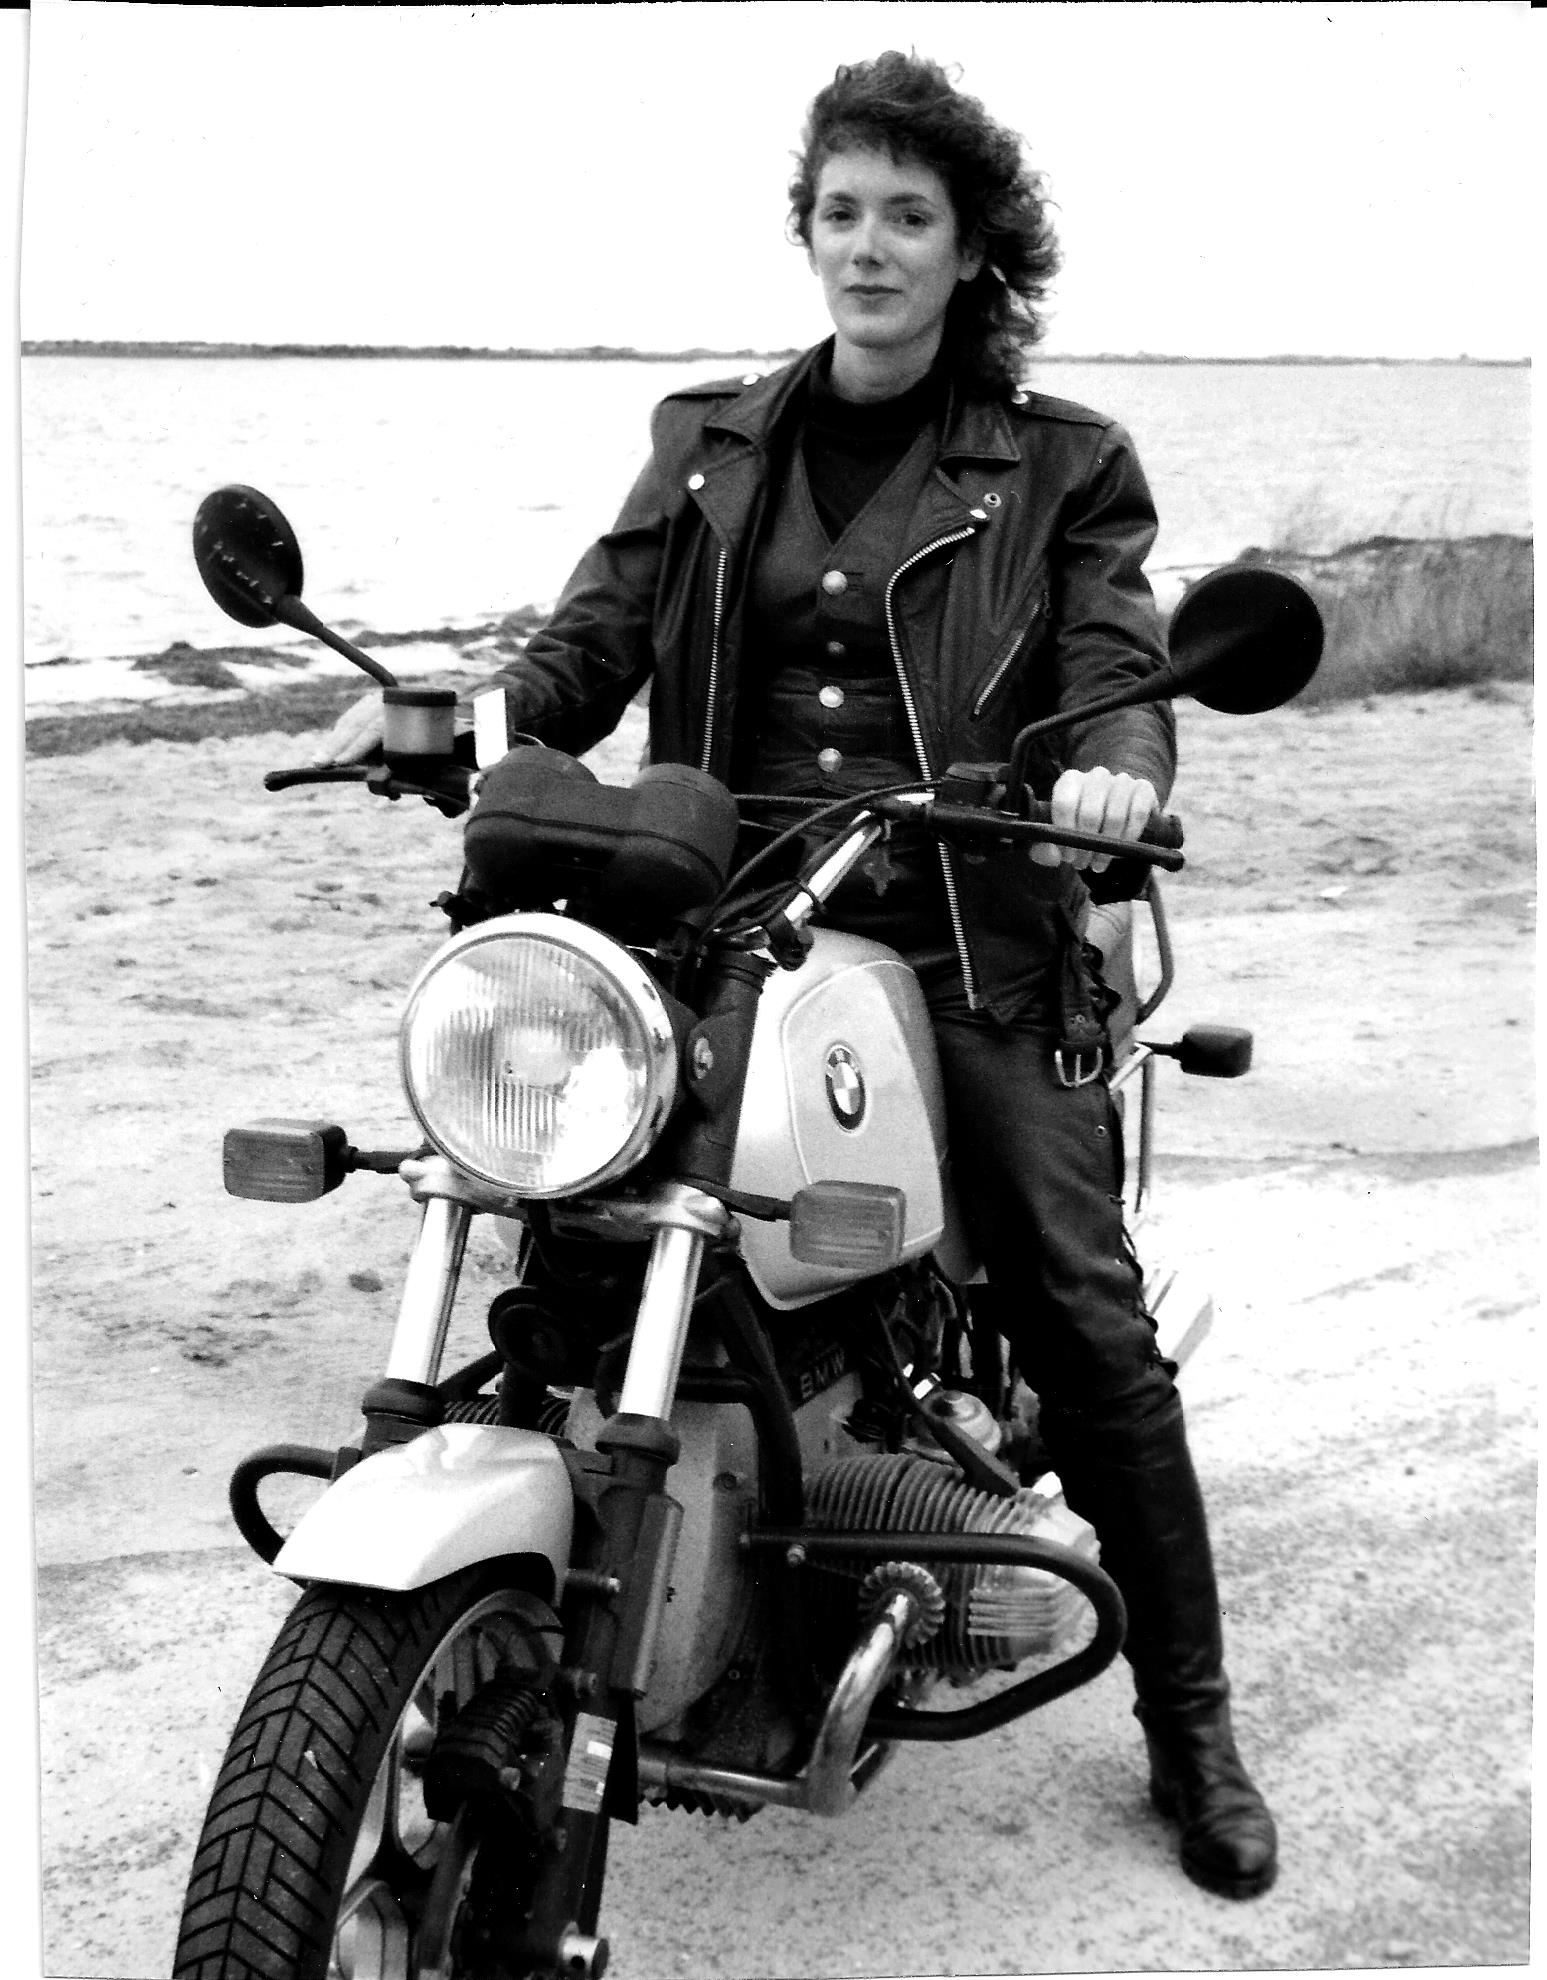 Ann Ferrar on her vintage BMW-R65 upon the 1996 release of the first edition of <em>Hear Me Roar</em>.